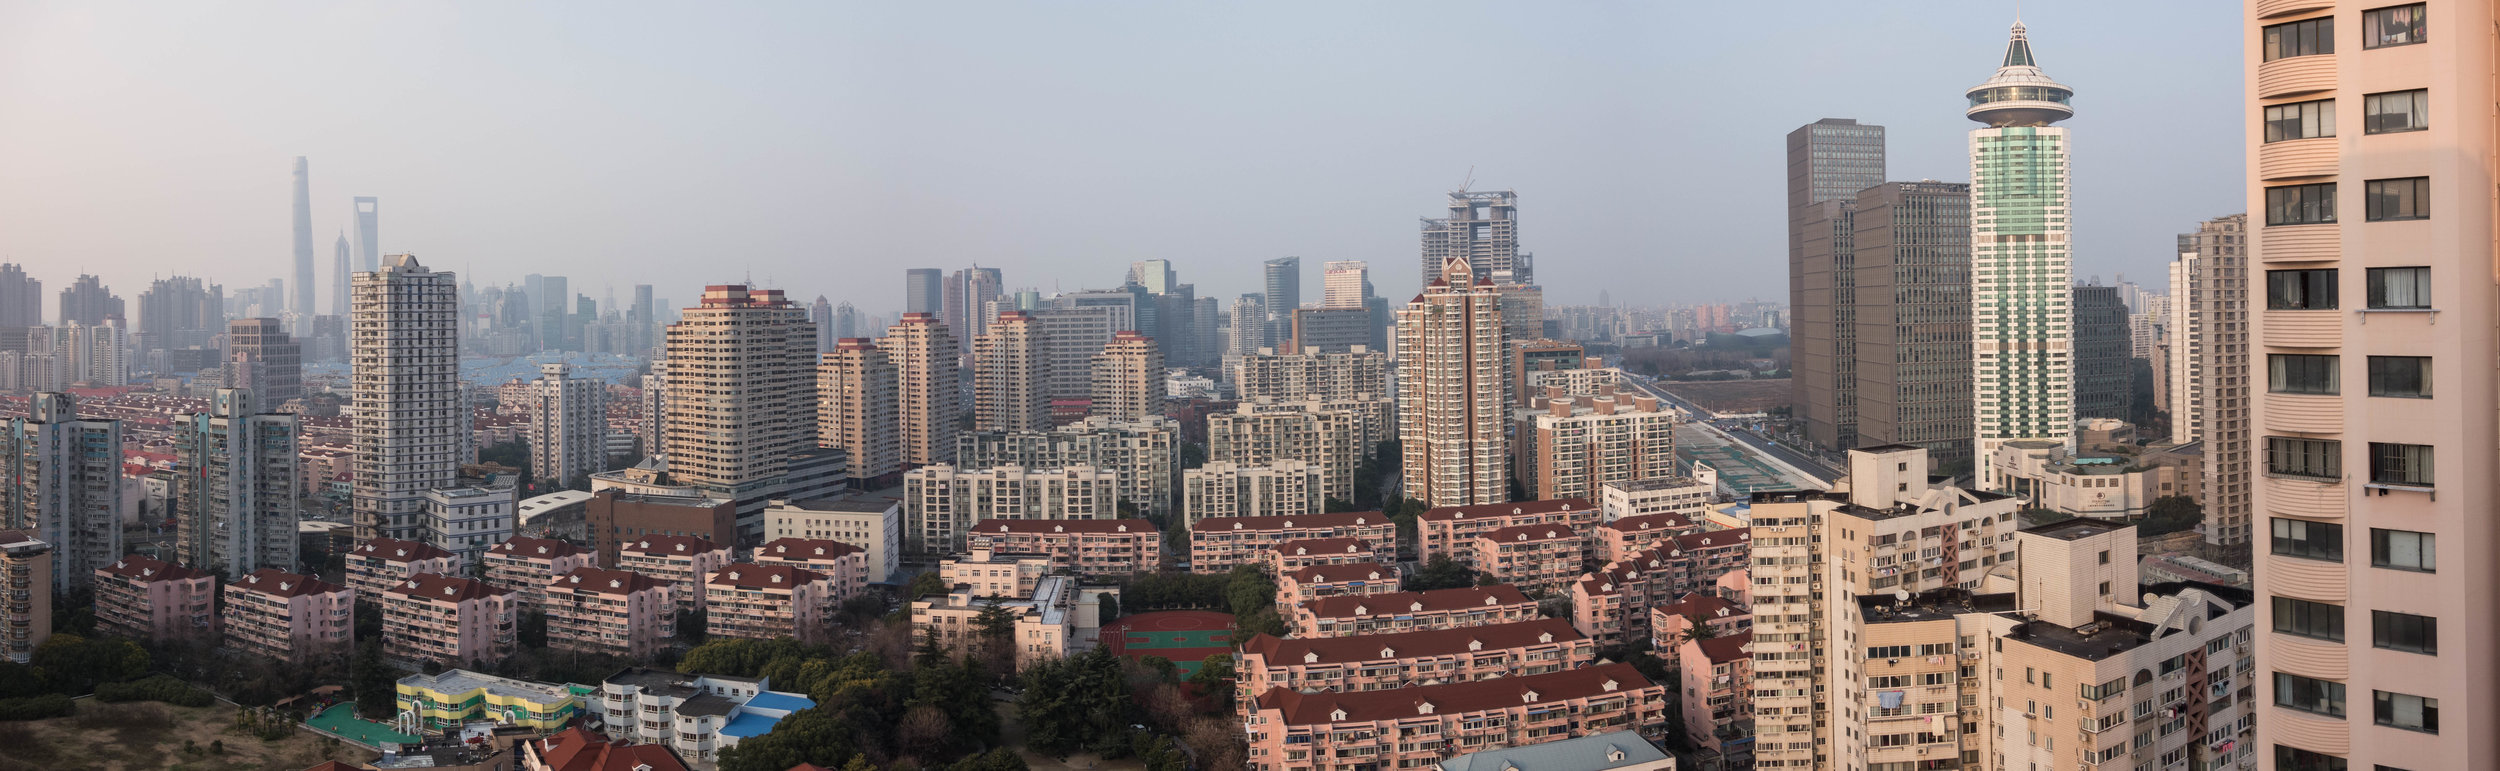 Our first view of Pudong from our temporary hotel.